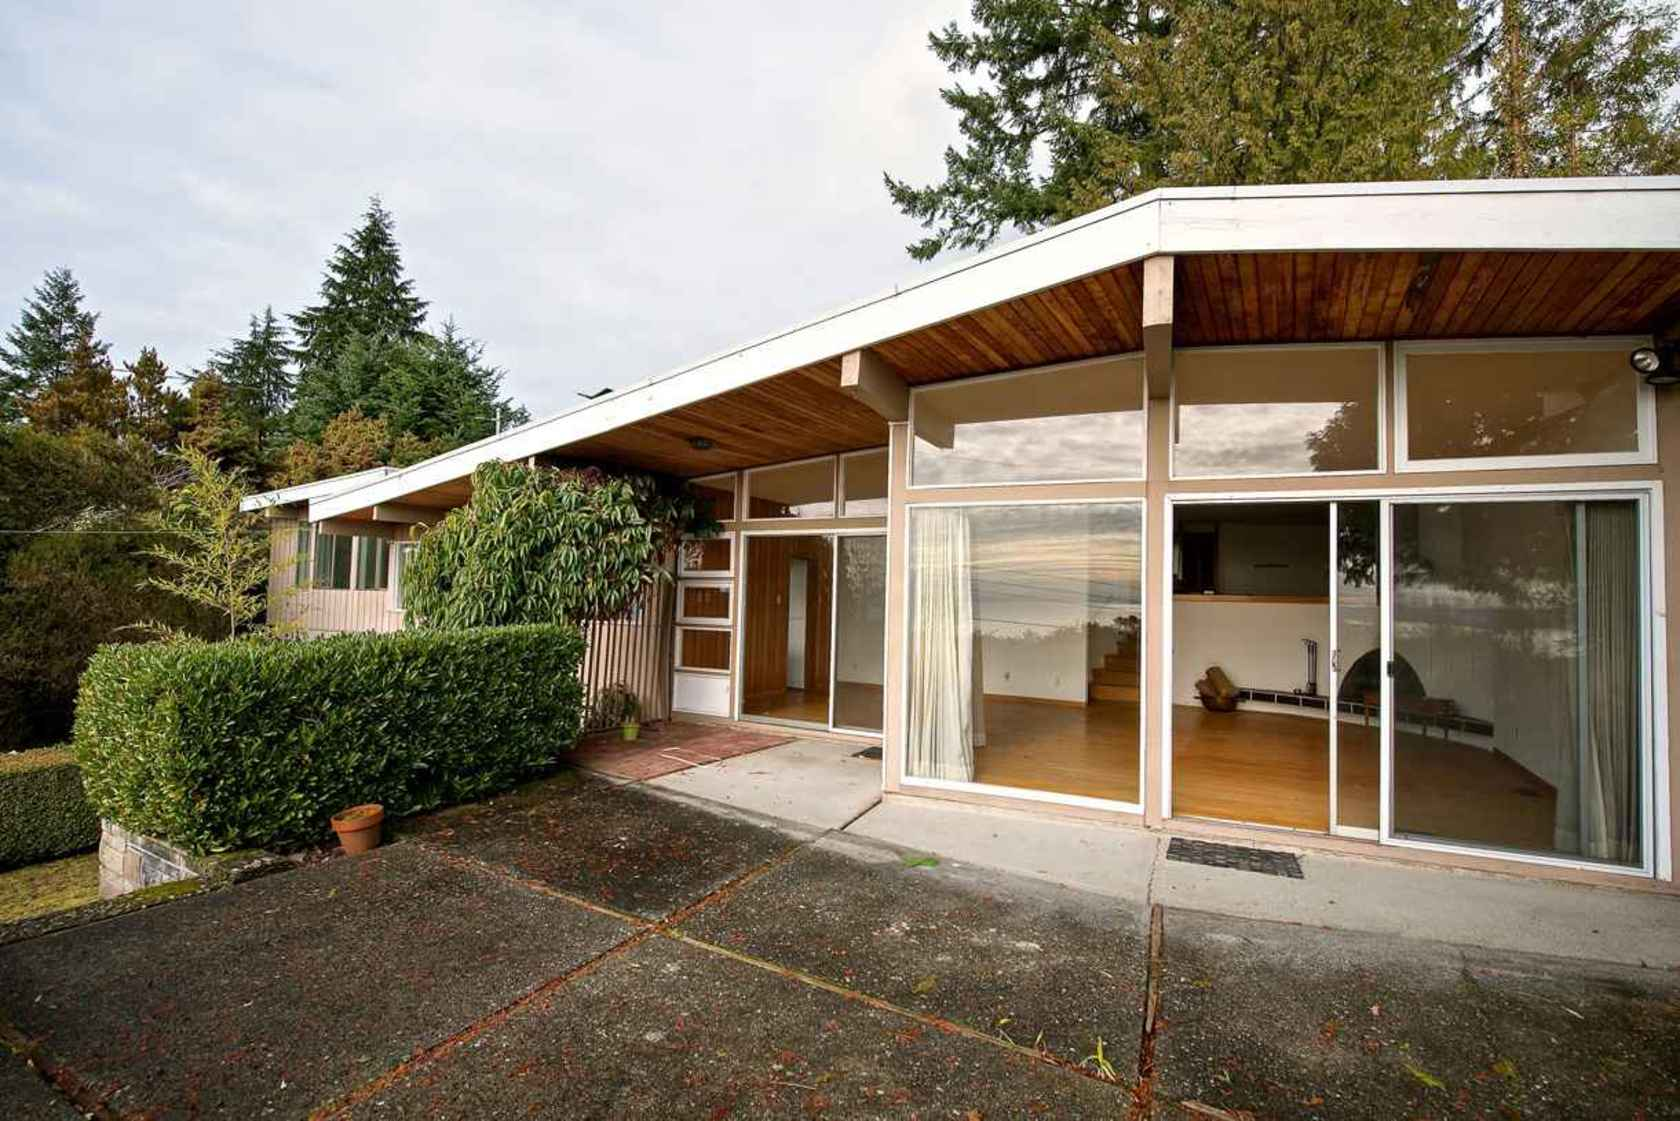 002 at 4135 Burkehll Place, Bayridge, West Vancouver